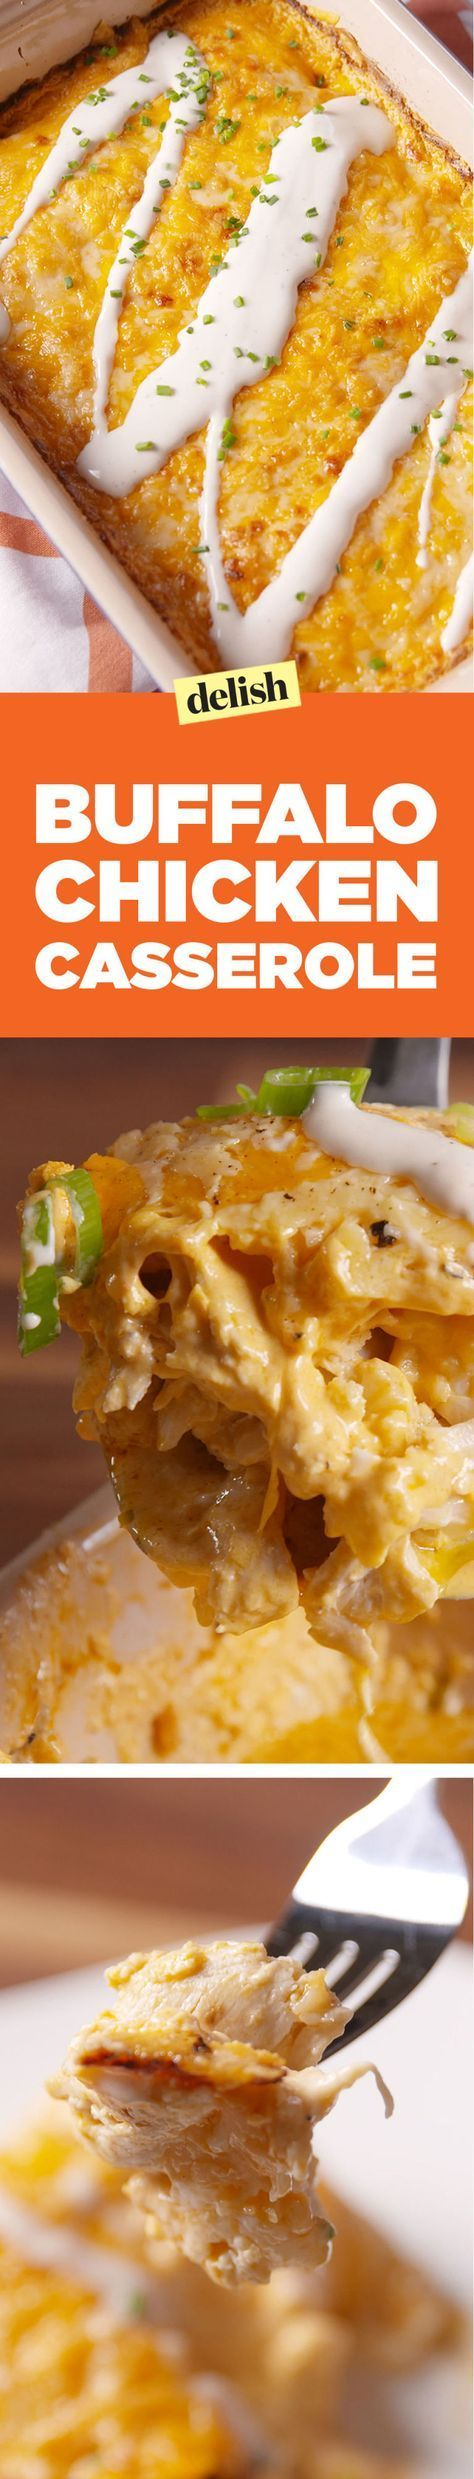 Our Buff Chick Casserole Is Made For True Buffalo Lovers - Delish.com